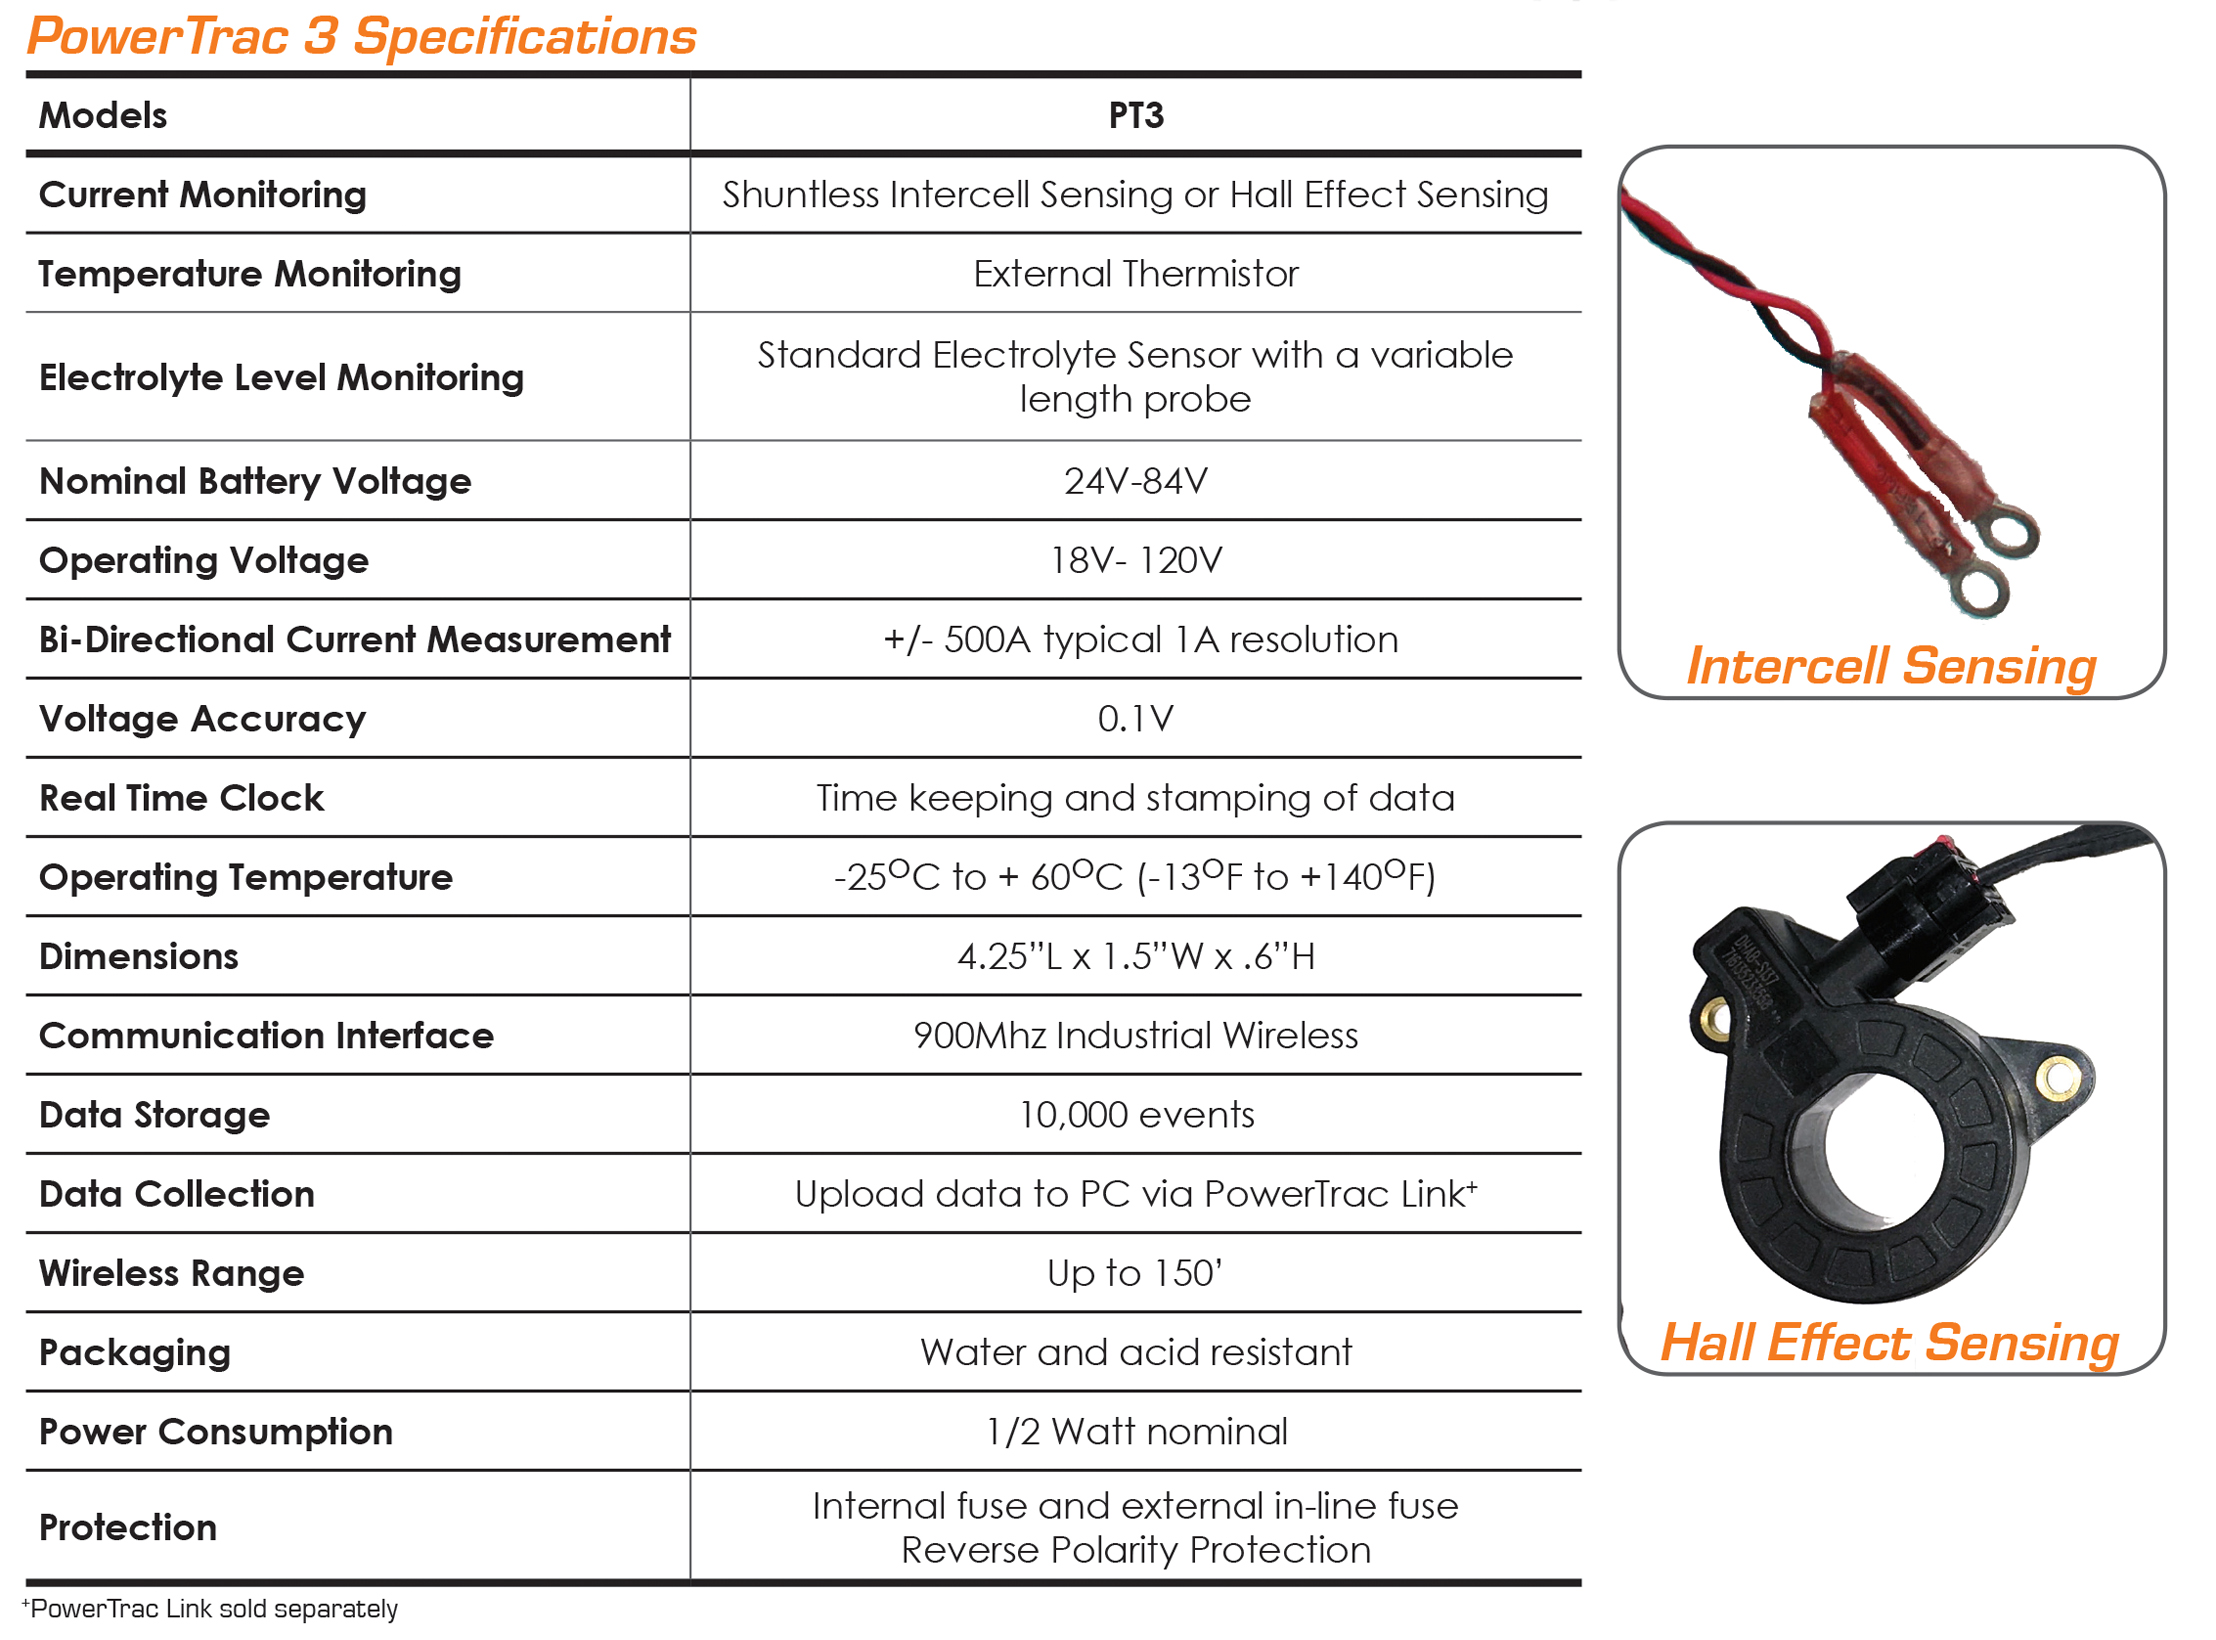 PowerTrac3 Specifications